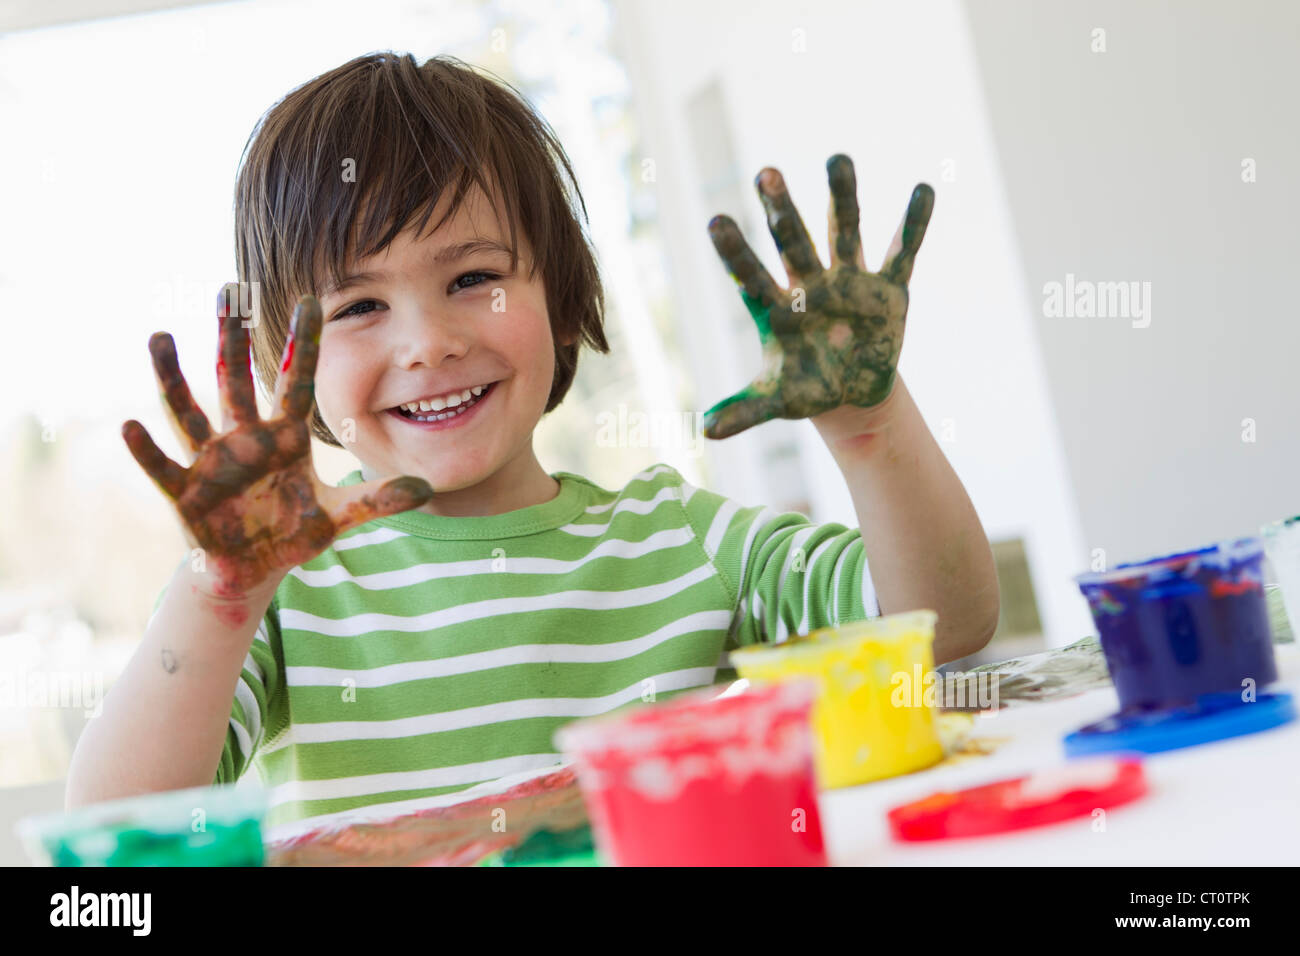 Smiling boy finger painting indoors - Stock Image